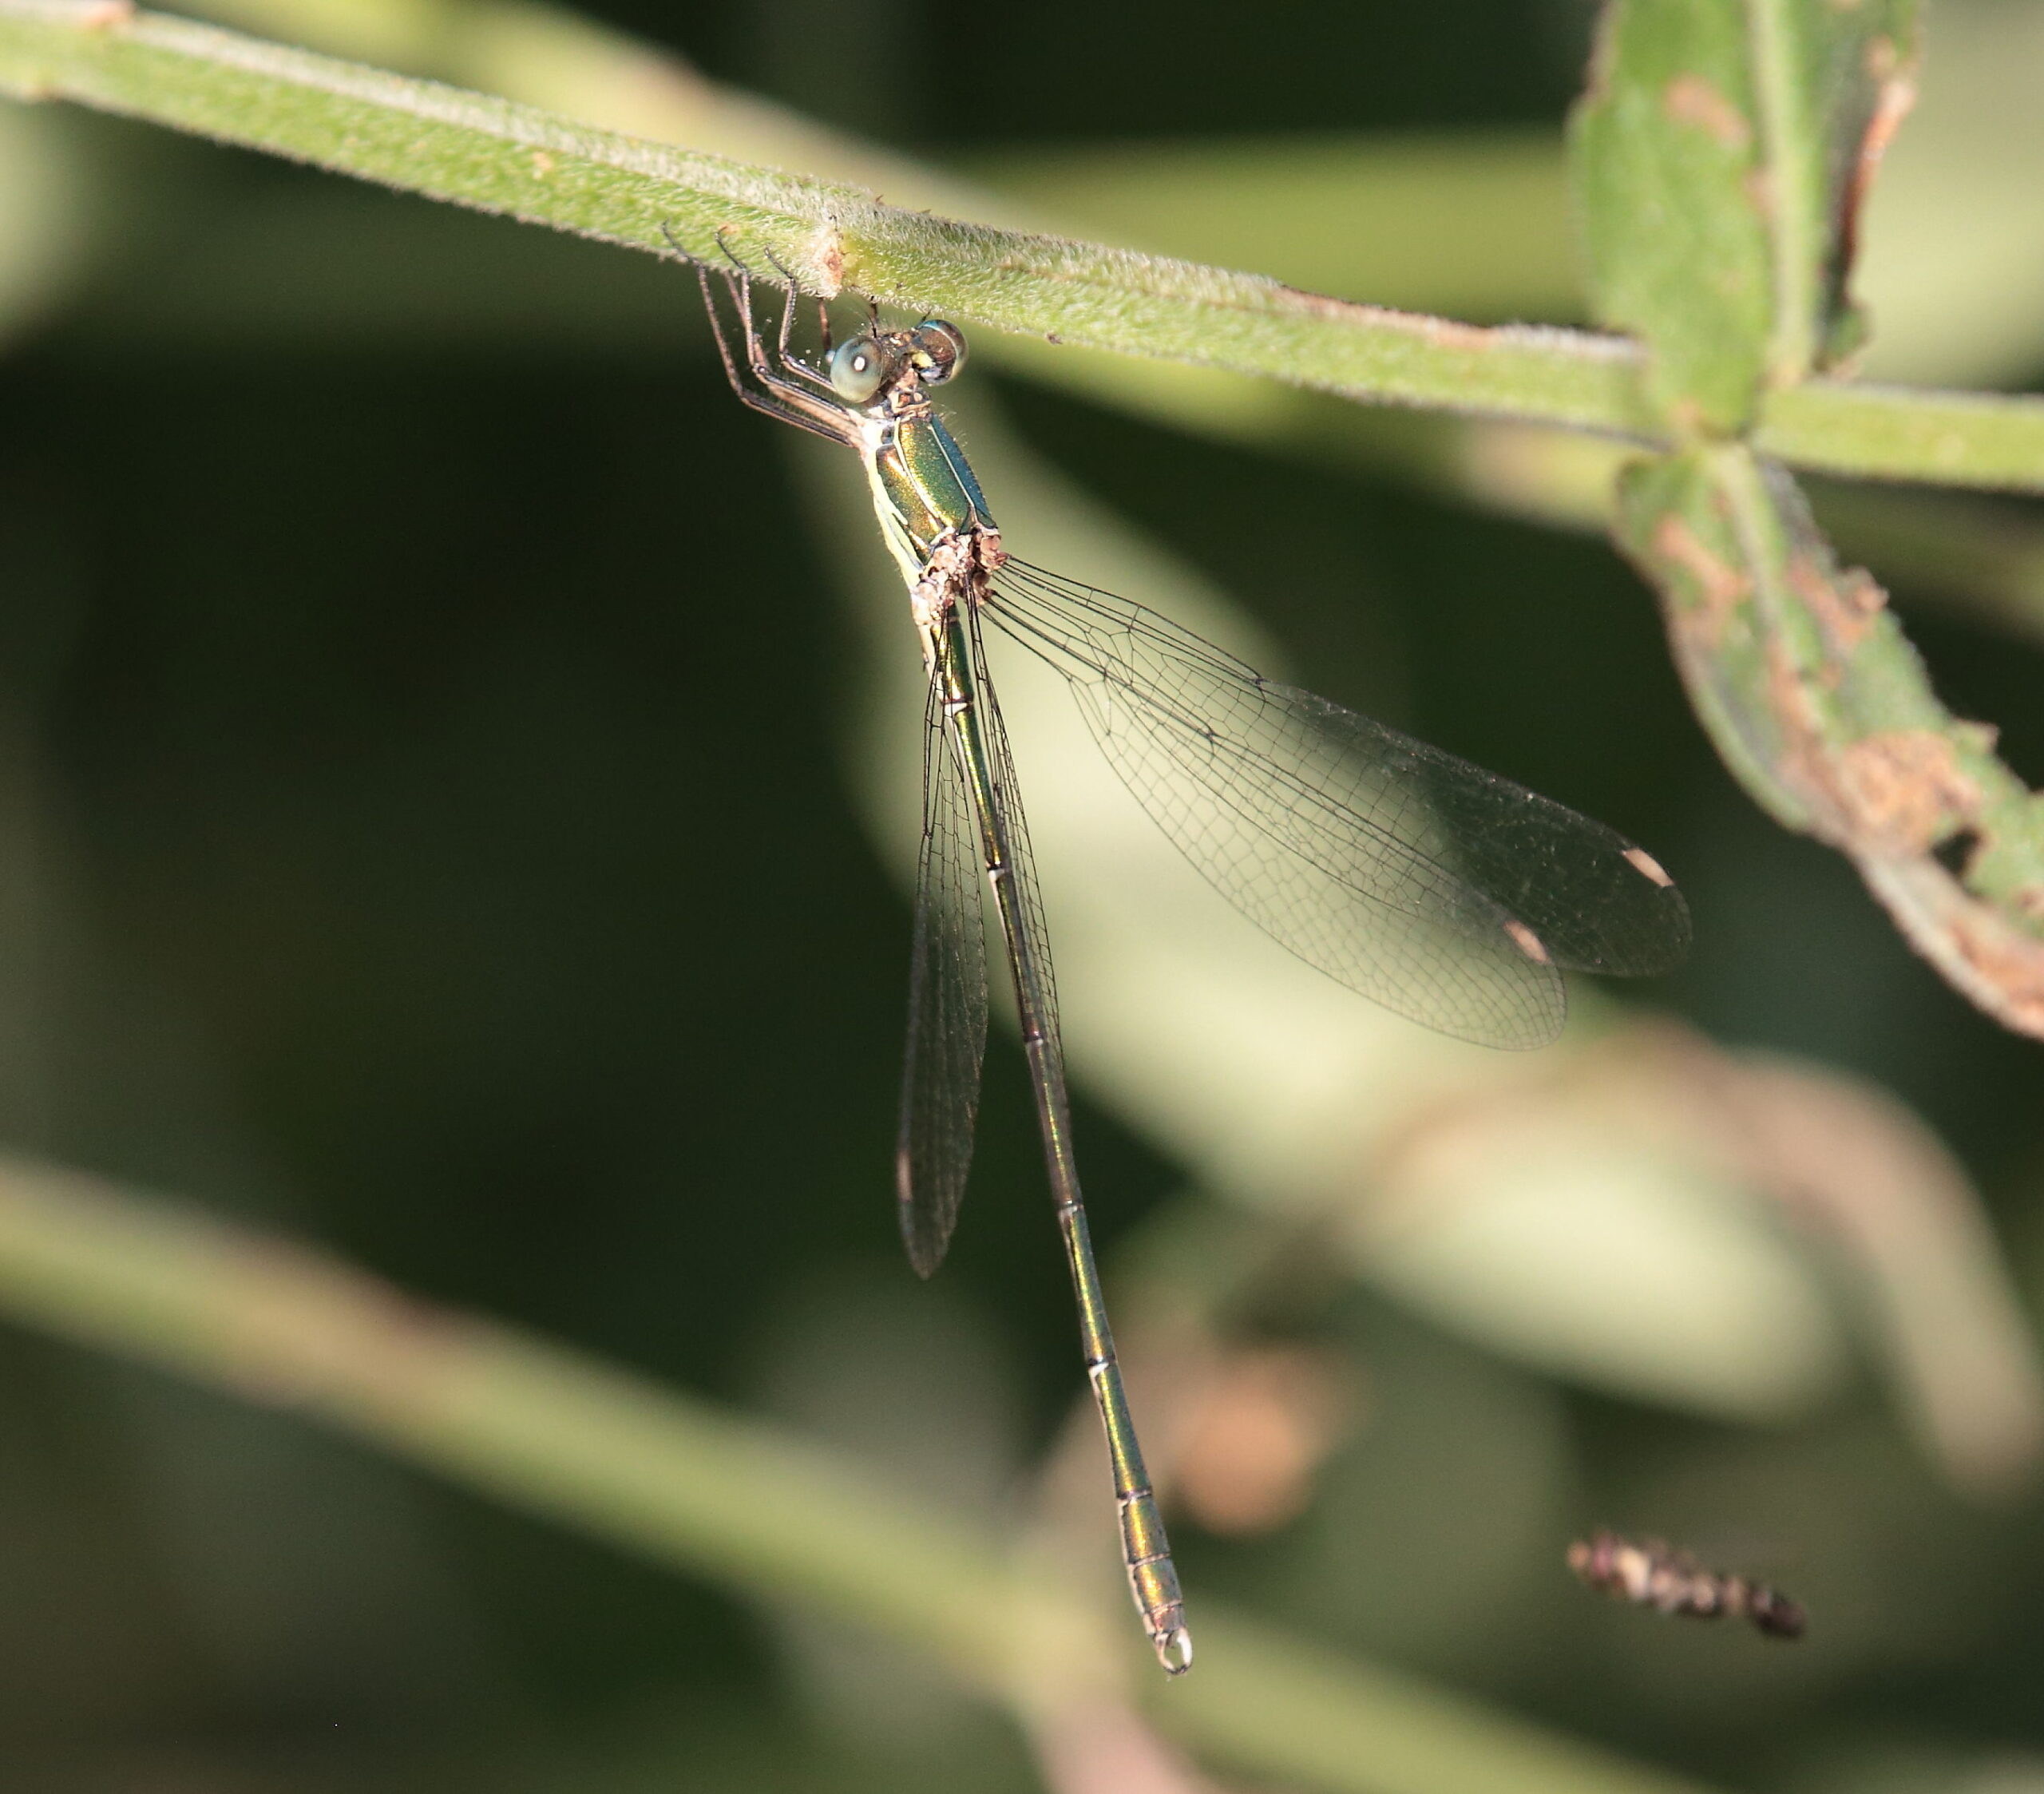 Western willow spreadwing-dragonfly tours